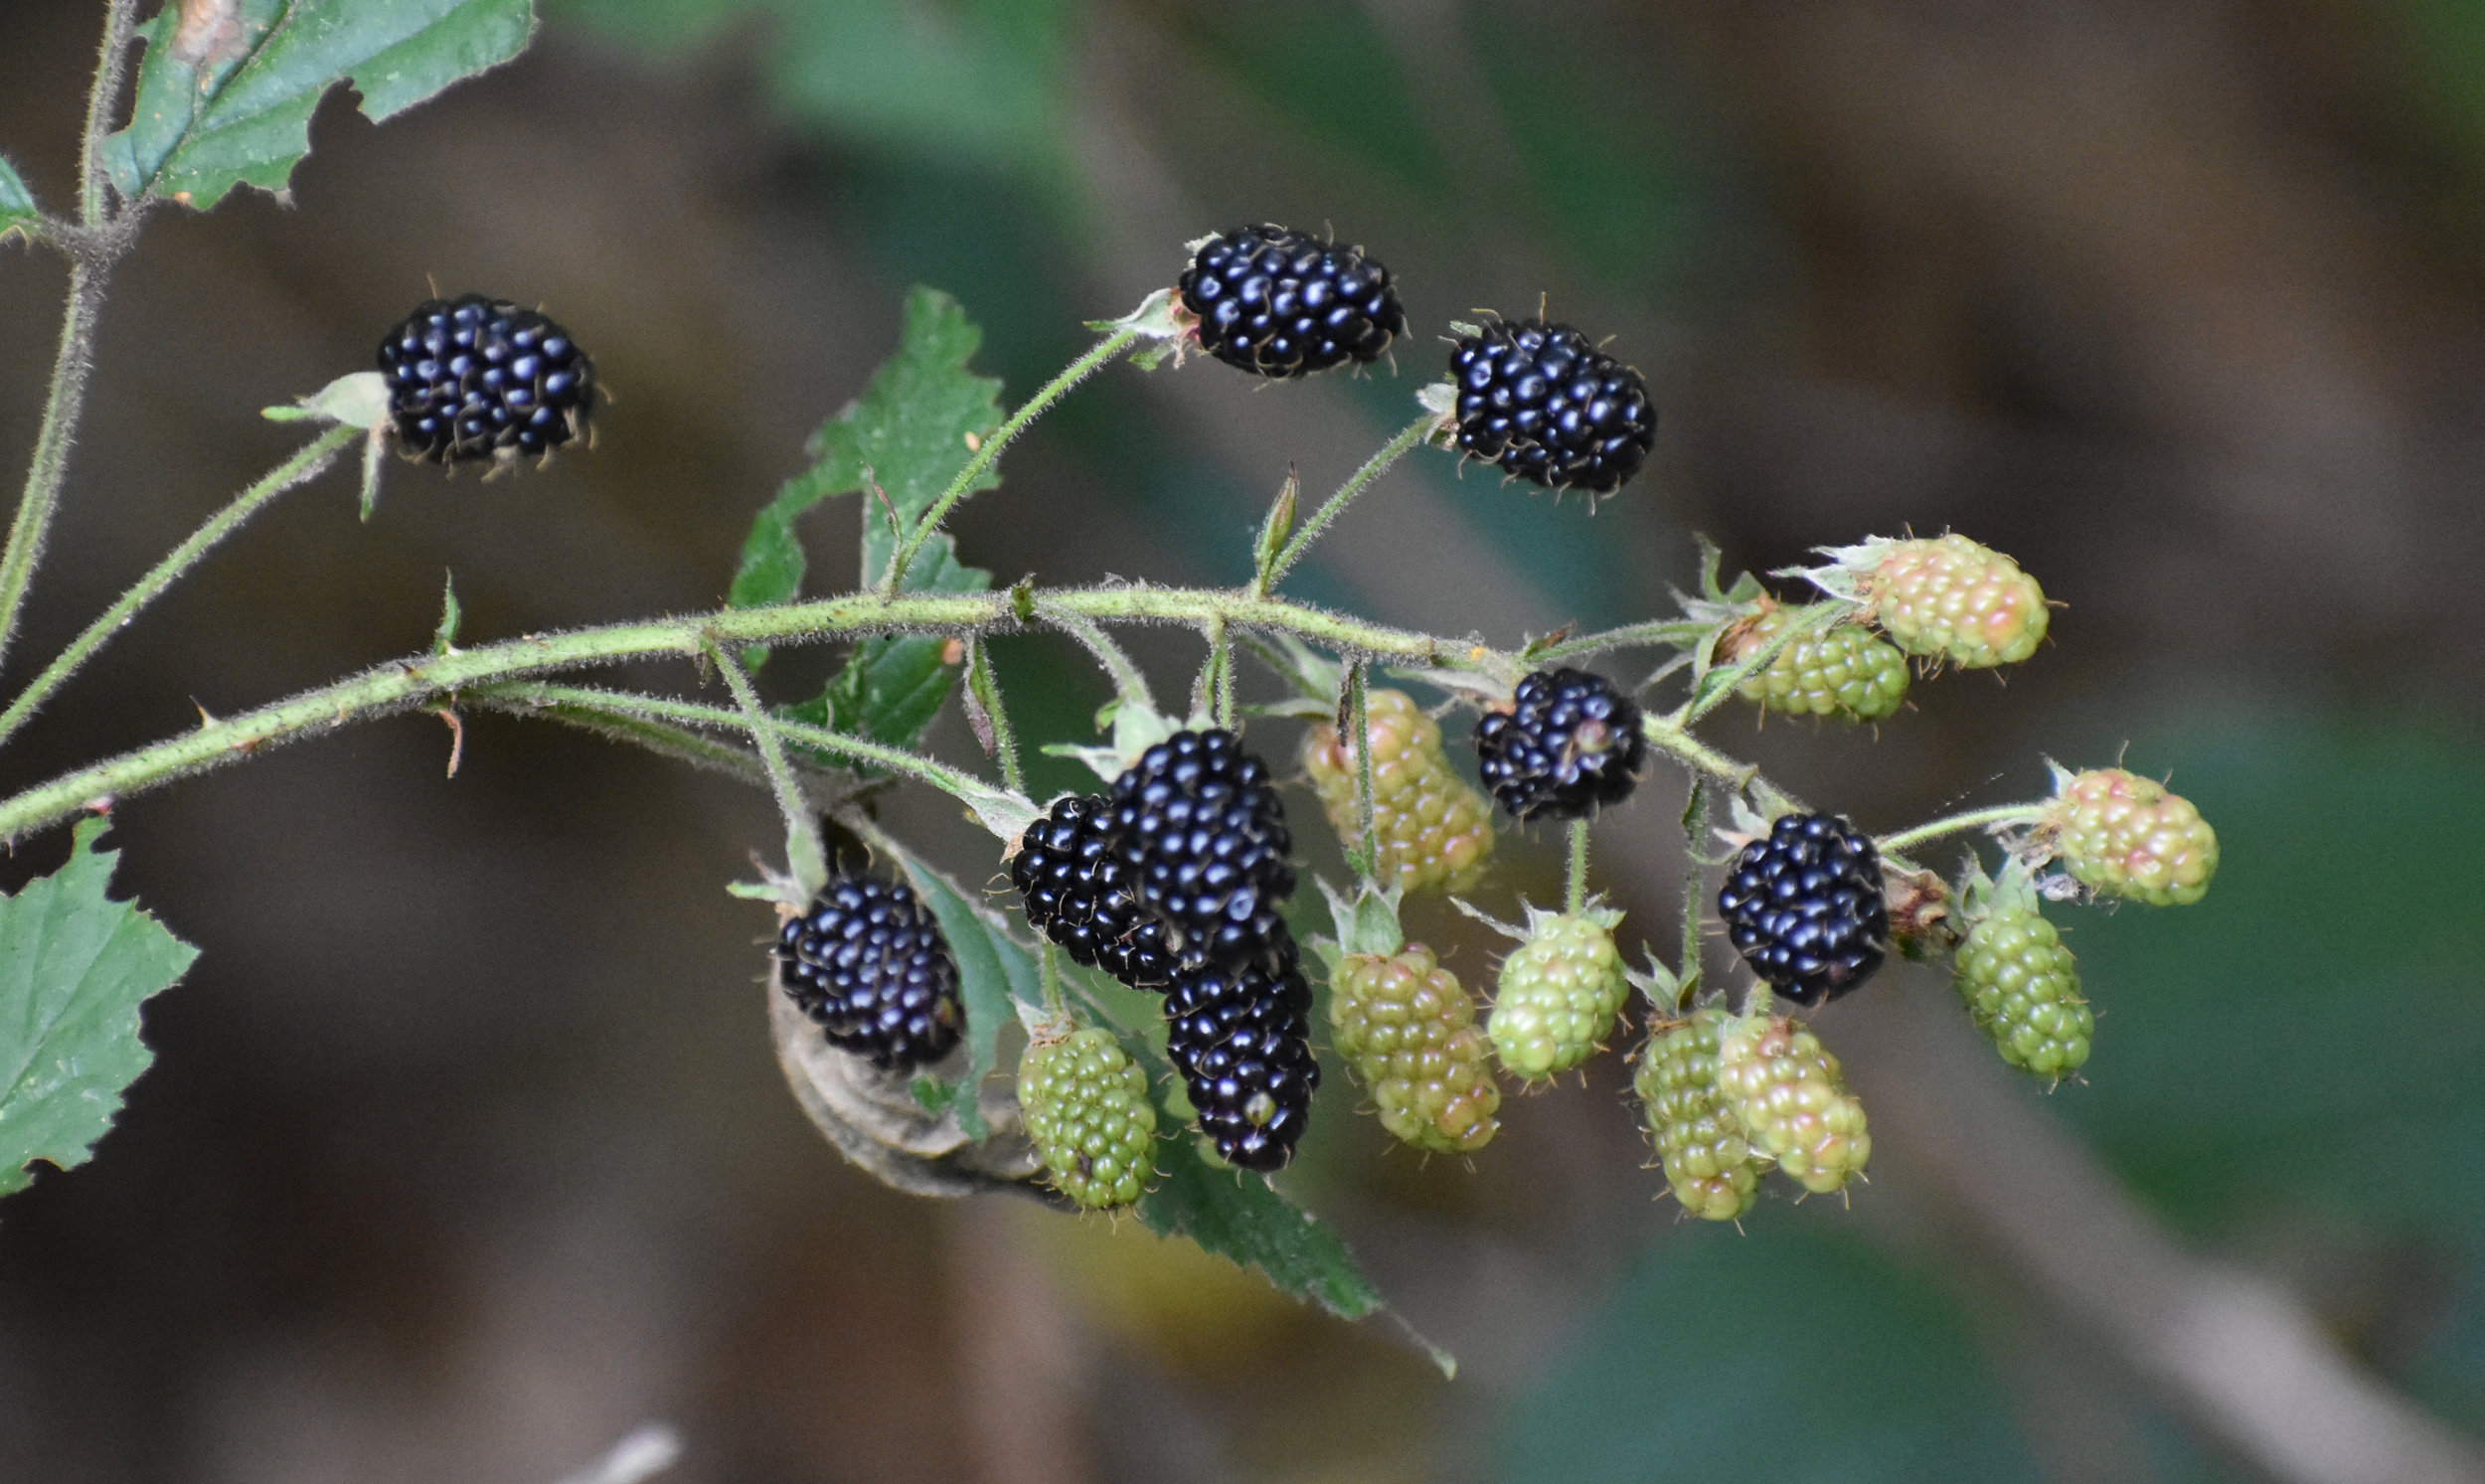 Wild Blackberry is a plant that attracts birds